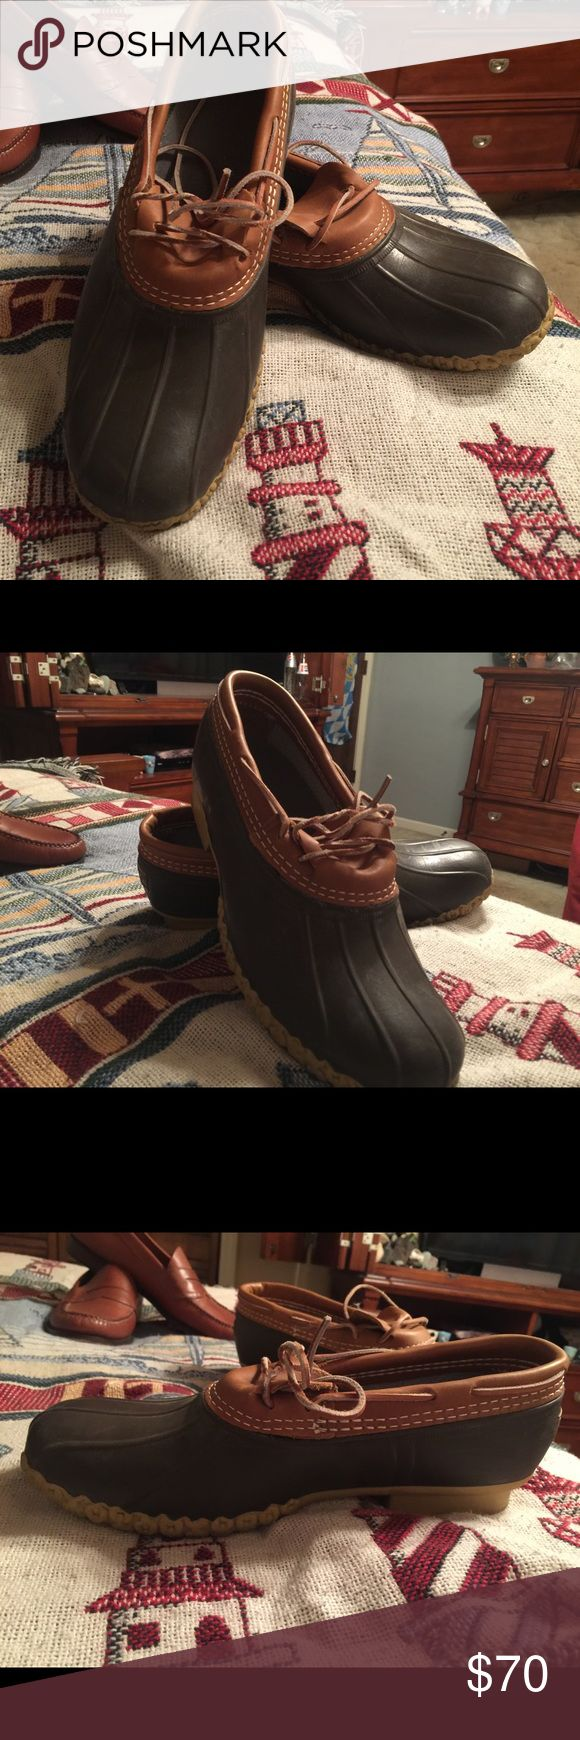 L.L. Bean boots for sale! Size 11 bean boots! Worn a couple times. They are too big for my feet. L.L. Bean Shoes Rain & Snow Boots